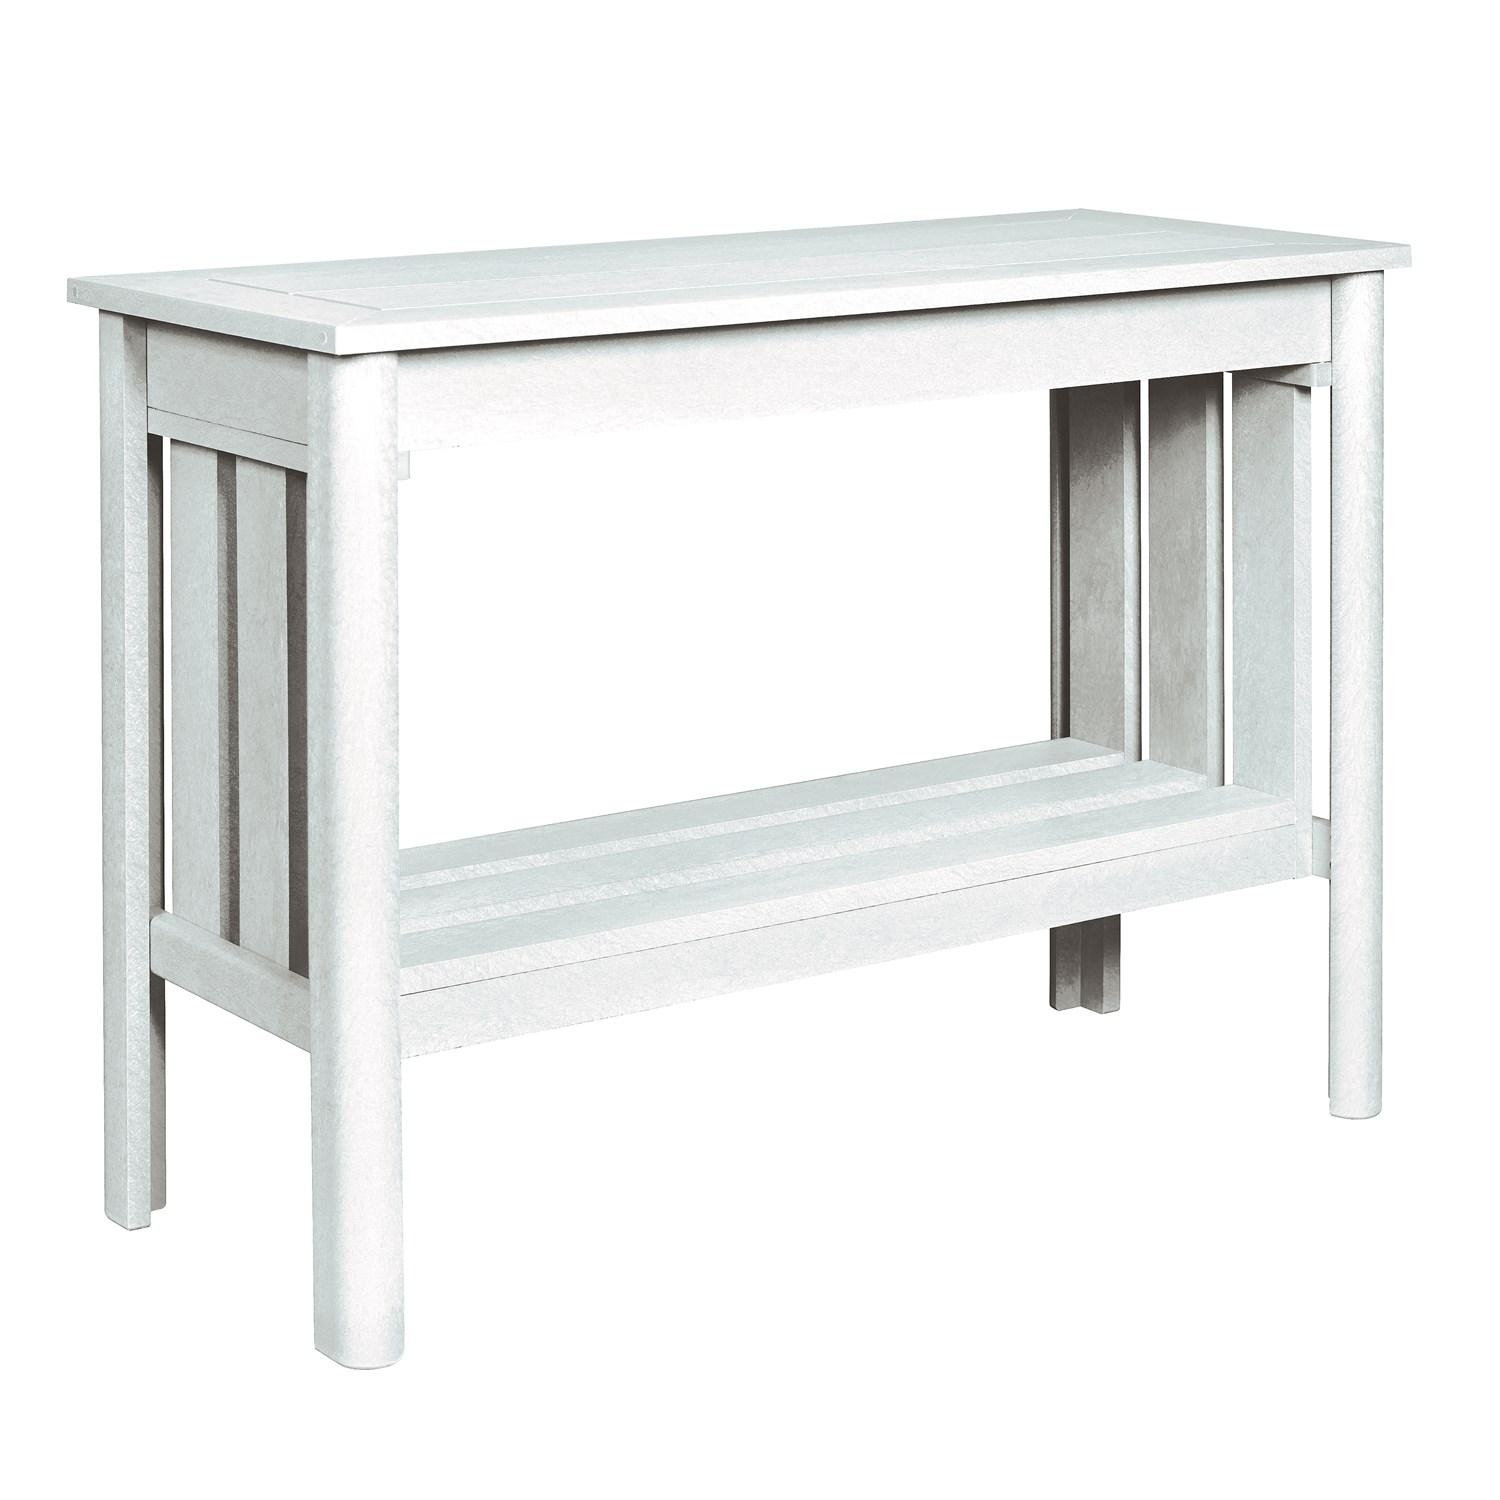 Patio Precision Stratford Sofa Table | The Simple Stores Pertaining To Stratford Sofas (Image 9 of 20)